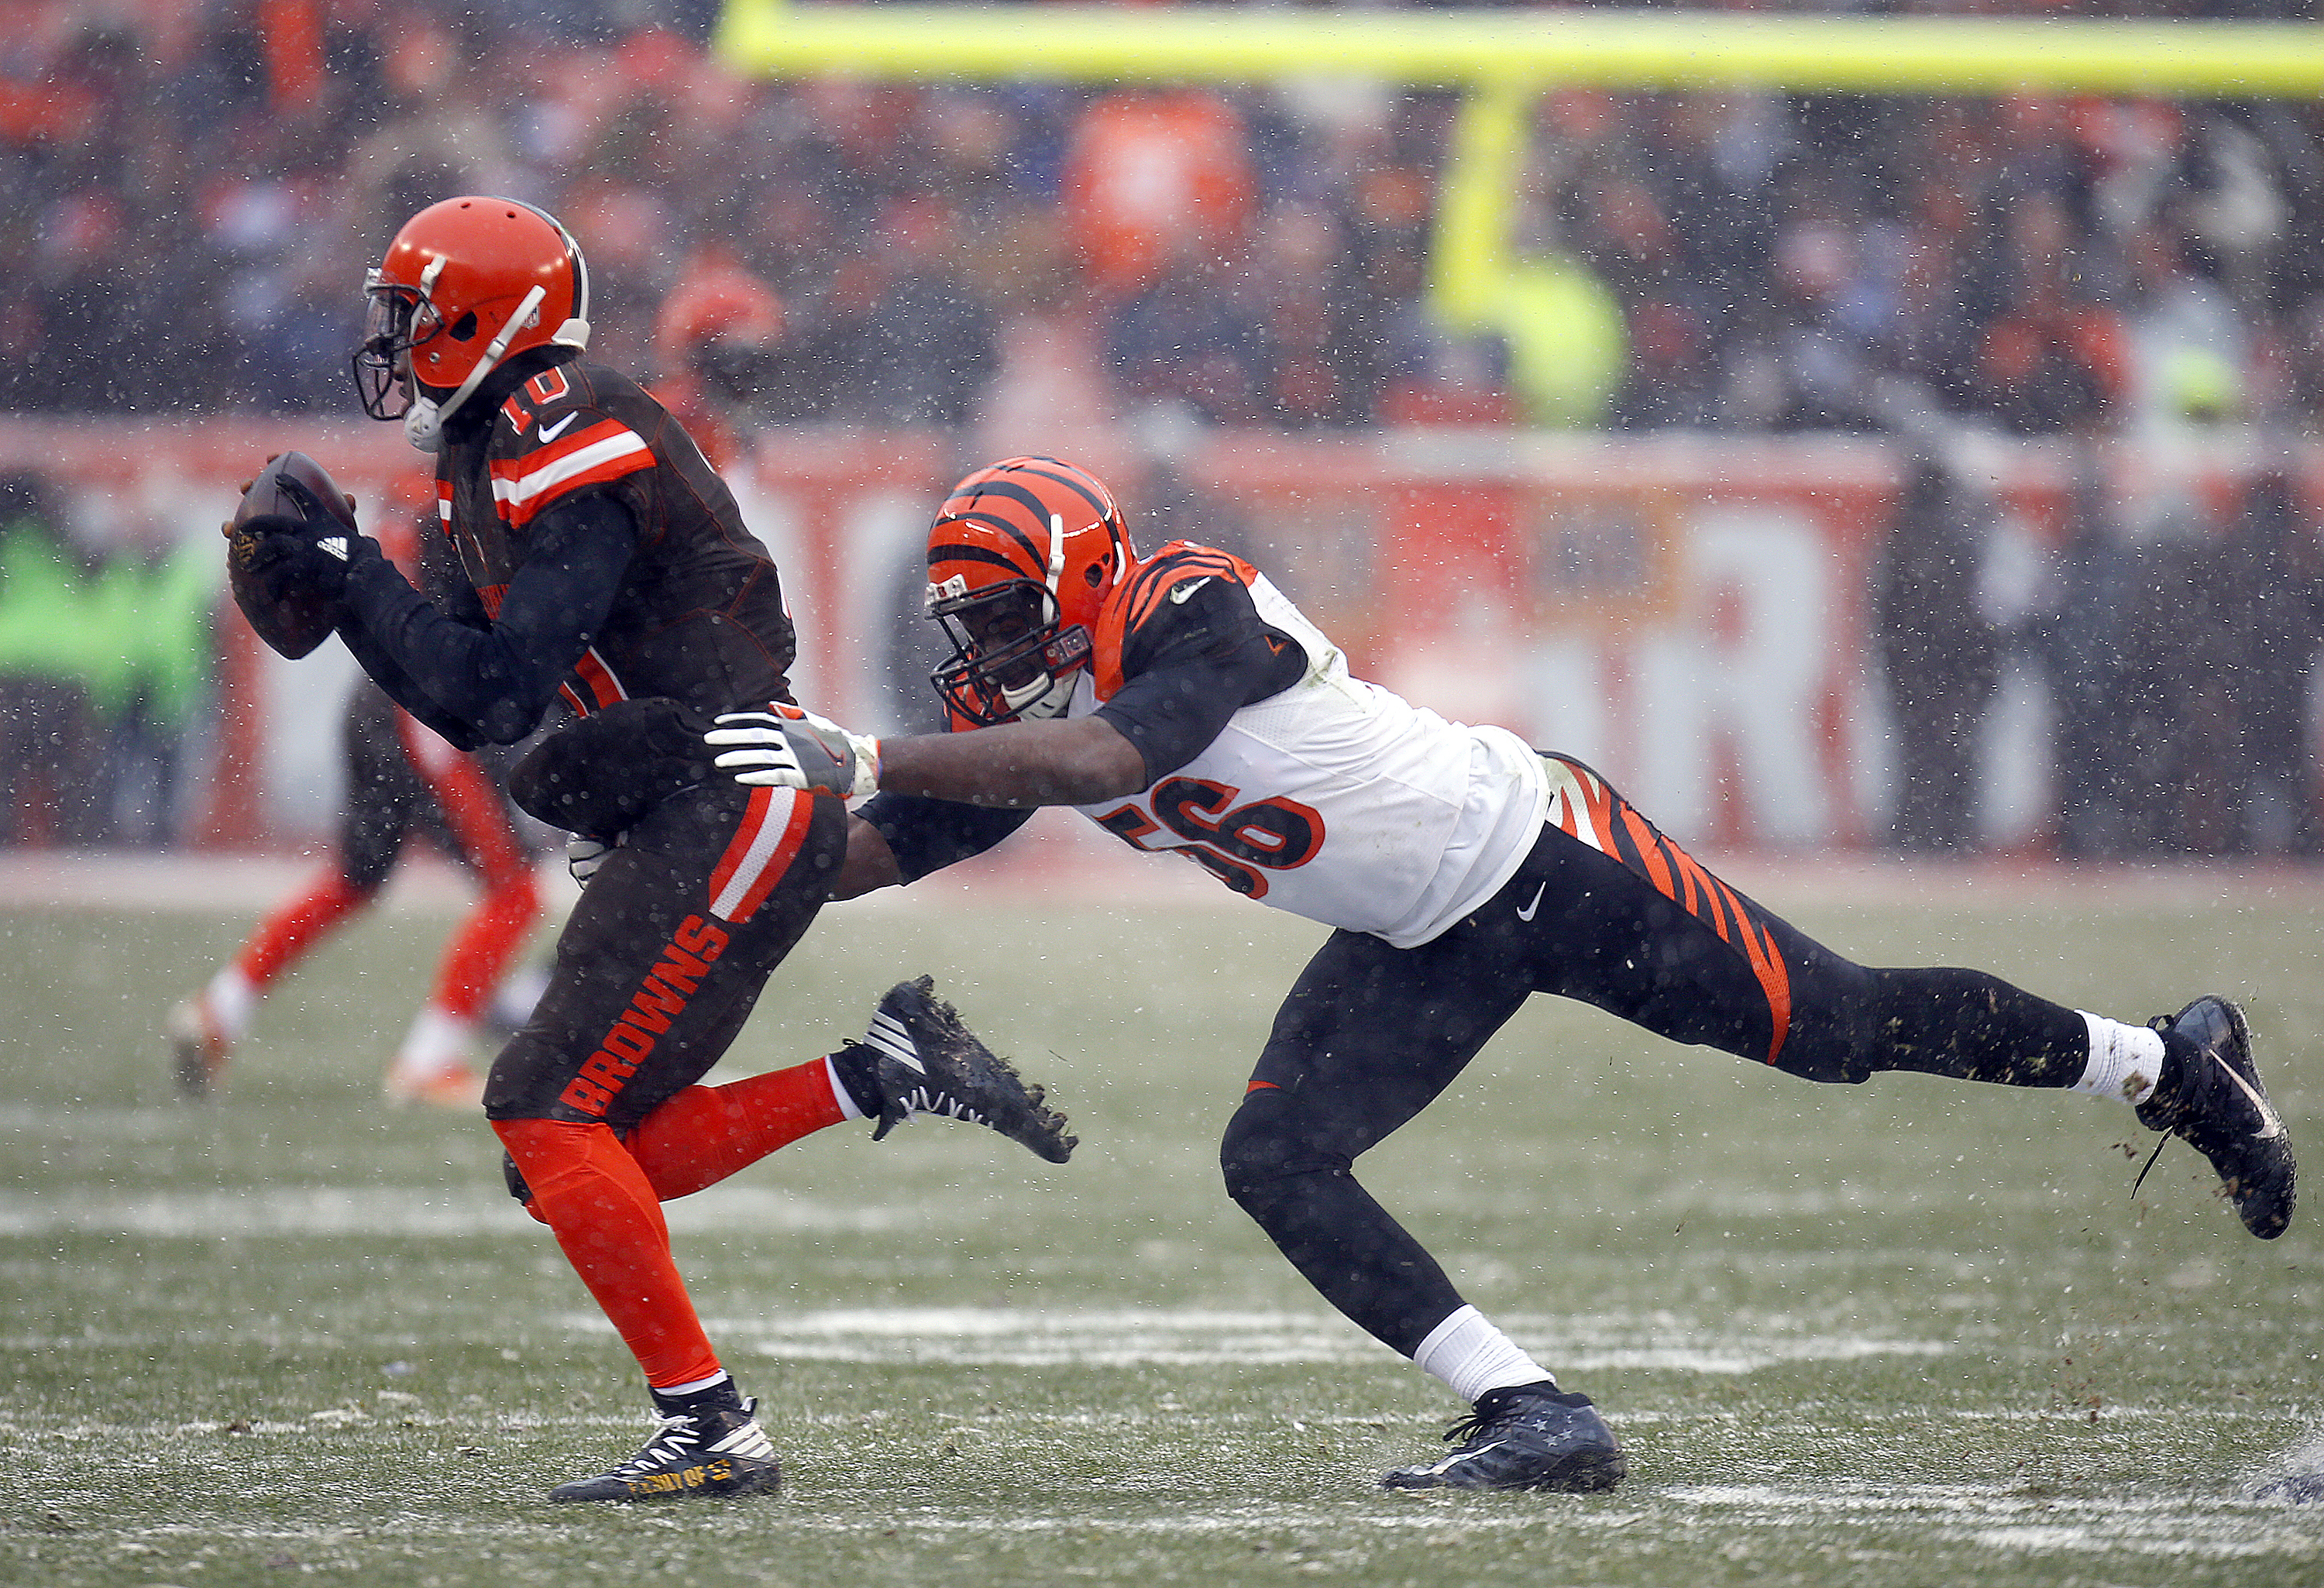 Karlos Dansby of the Bengals chases down Browns quarterback Robert Griffin III during last week's game in Cleveland.